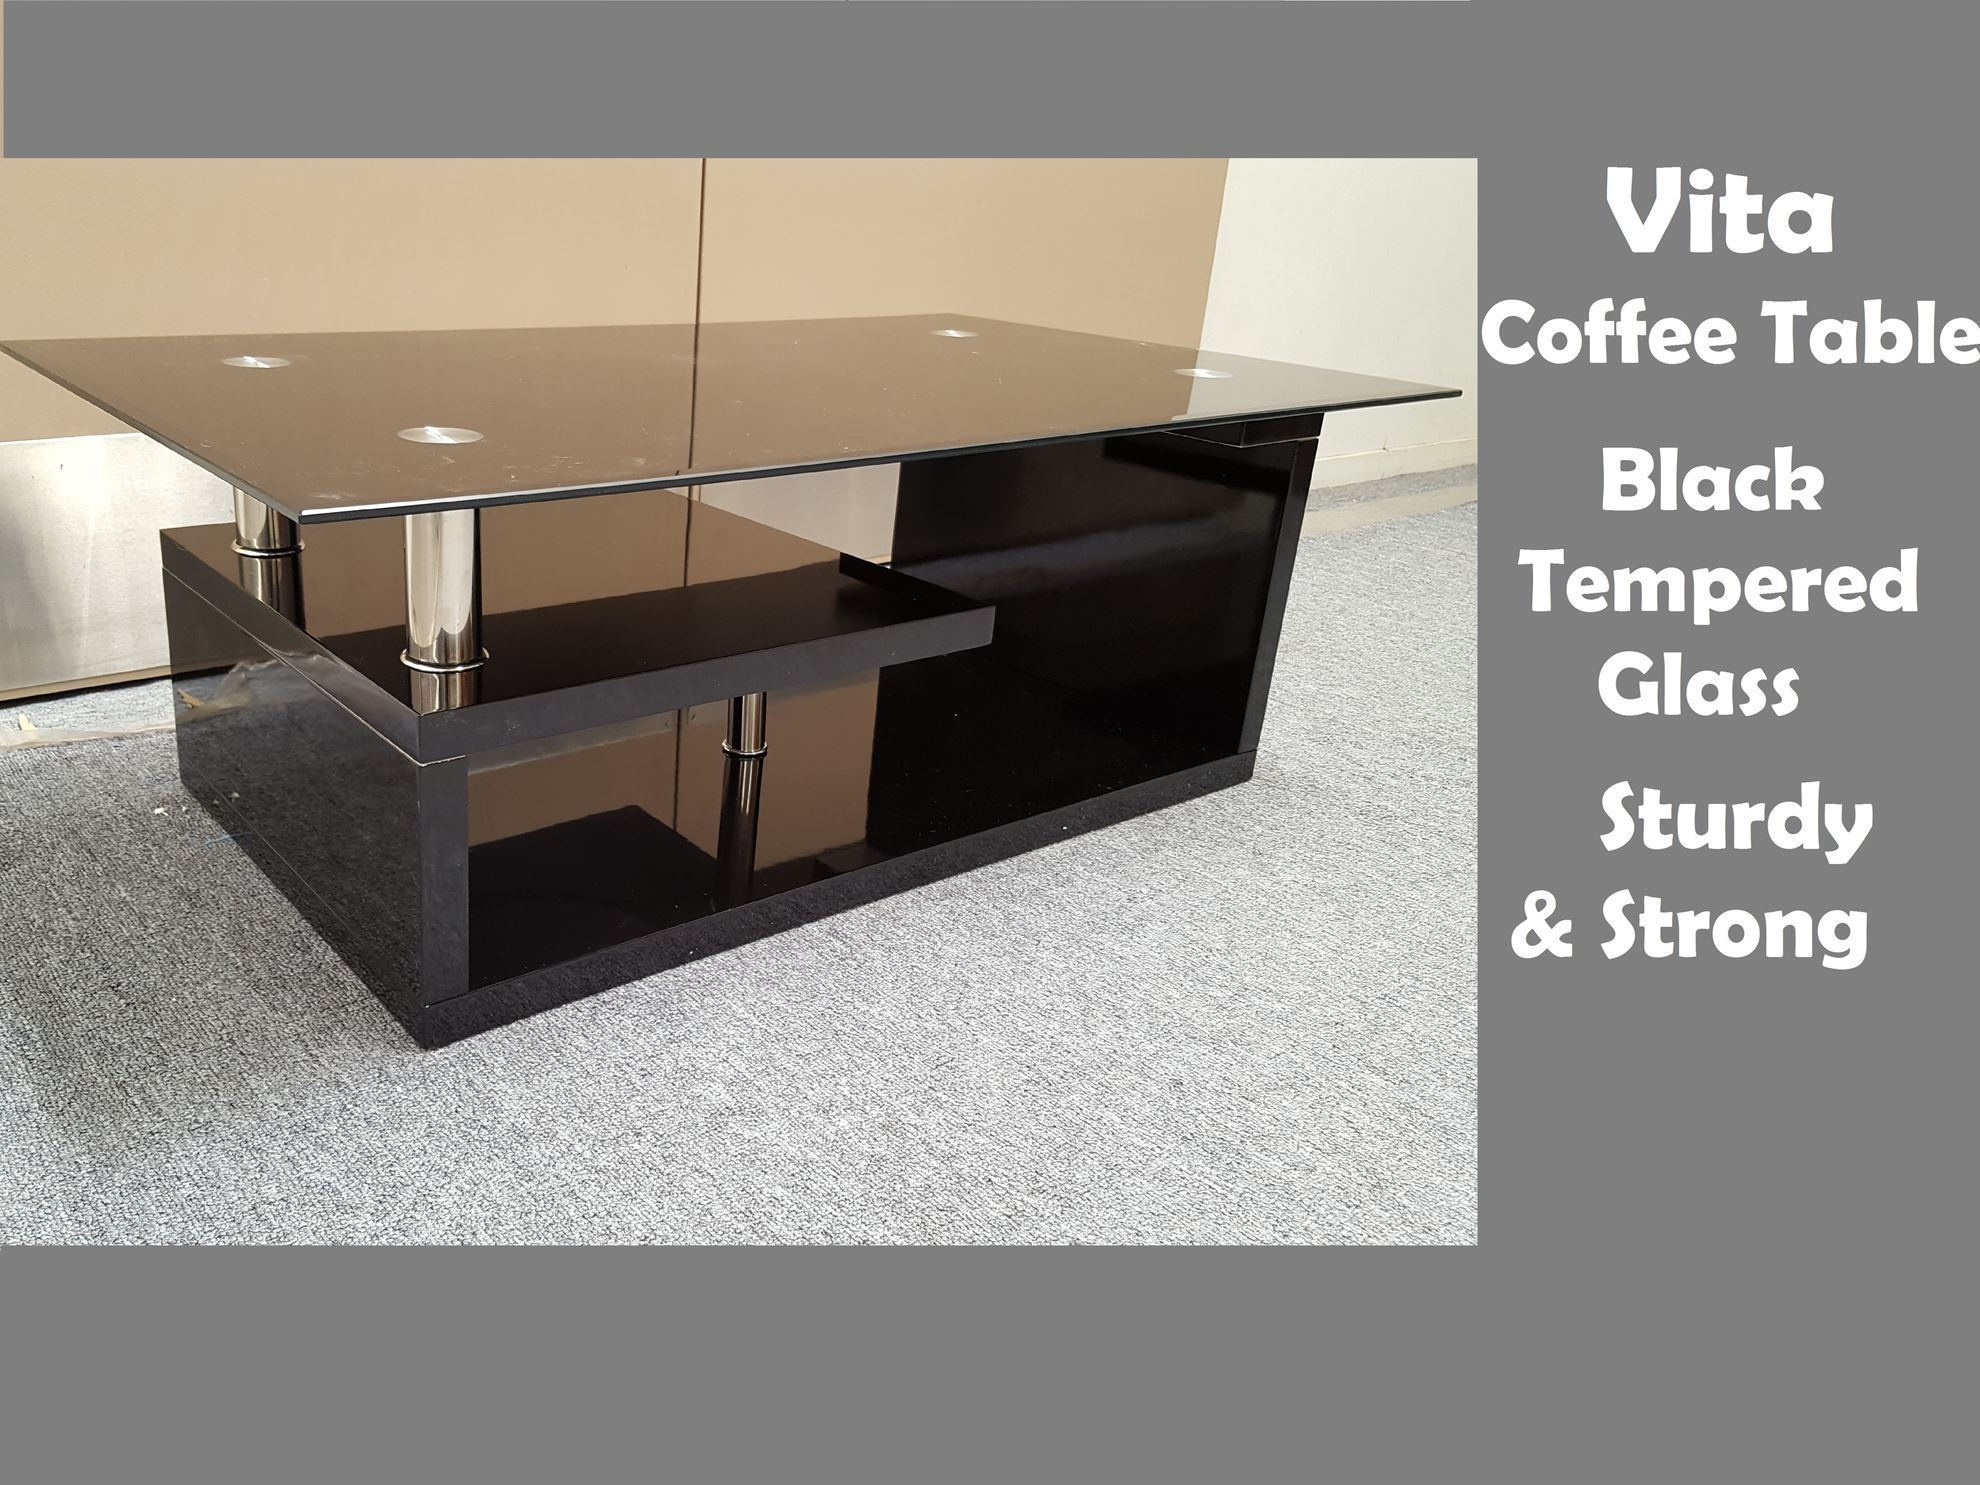 Coffee table tempered glass santaconapp for Tempered glass coffee table